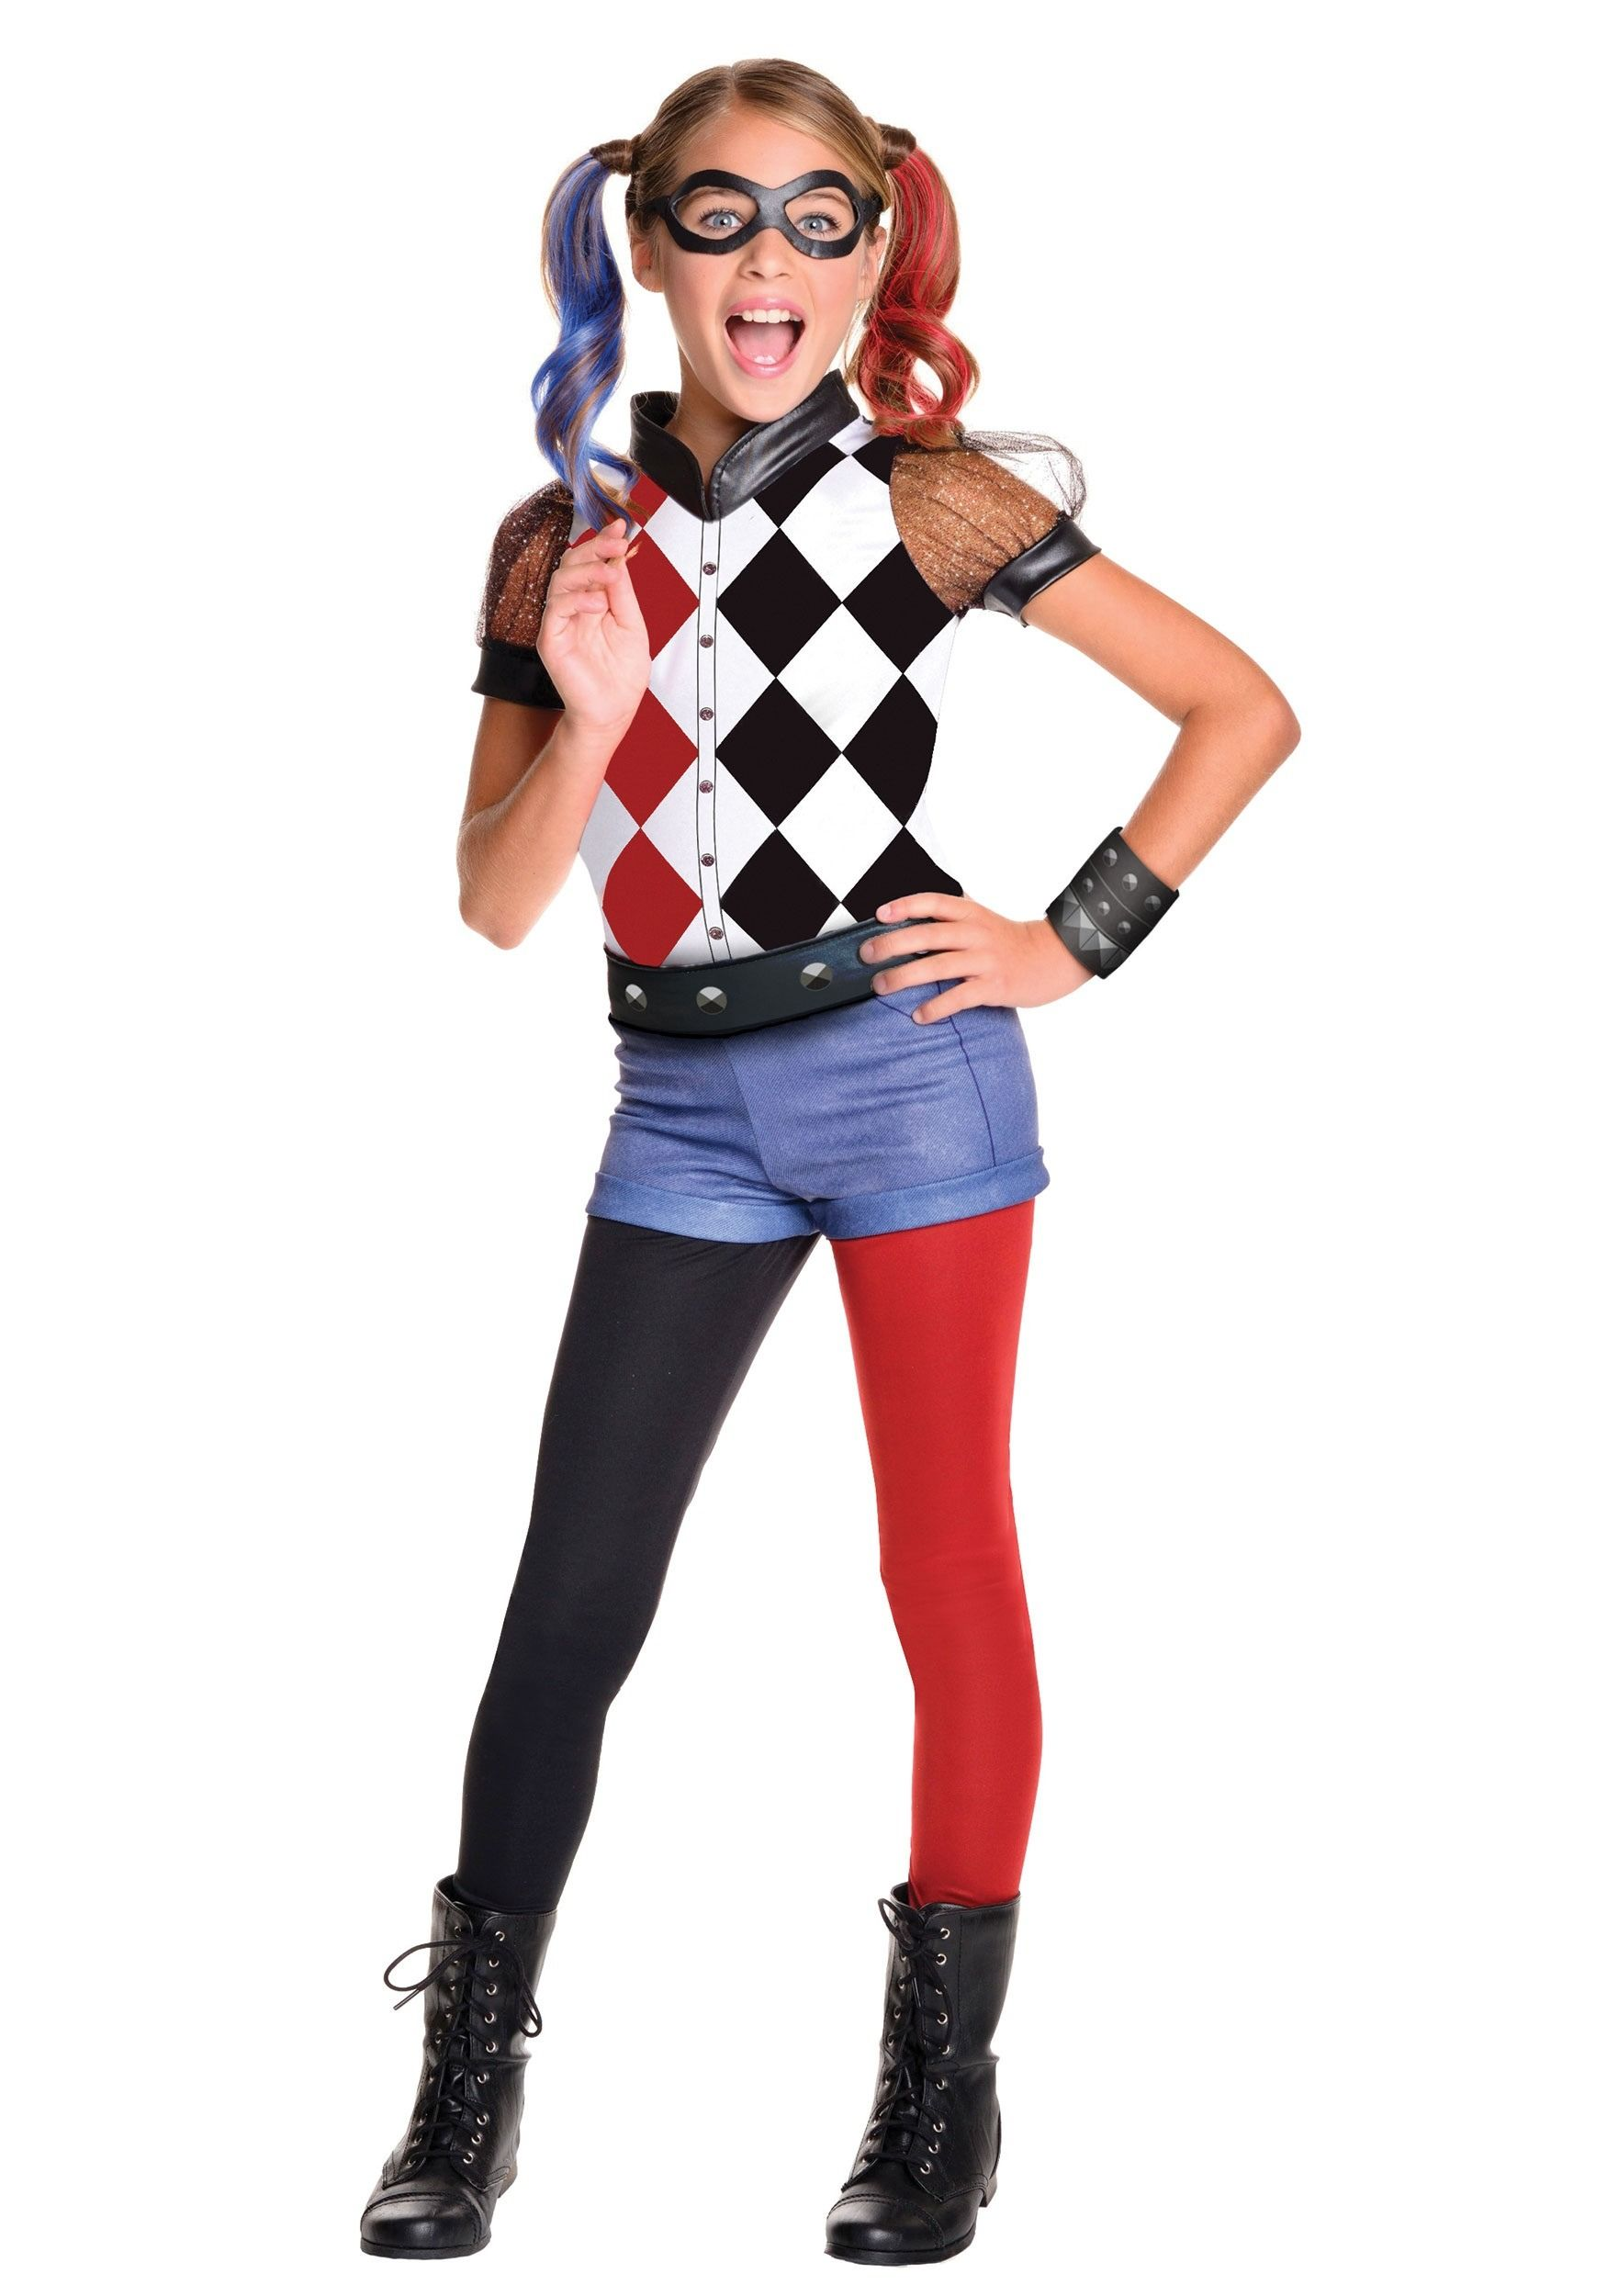 Dc superhero girls deluxe harley quinn costume halloween for Cool halloween costumes for kids girls